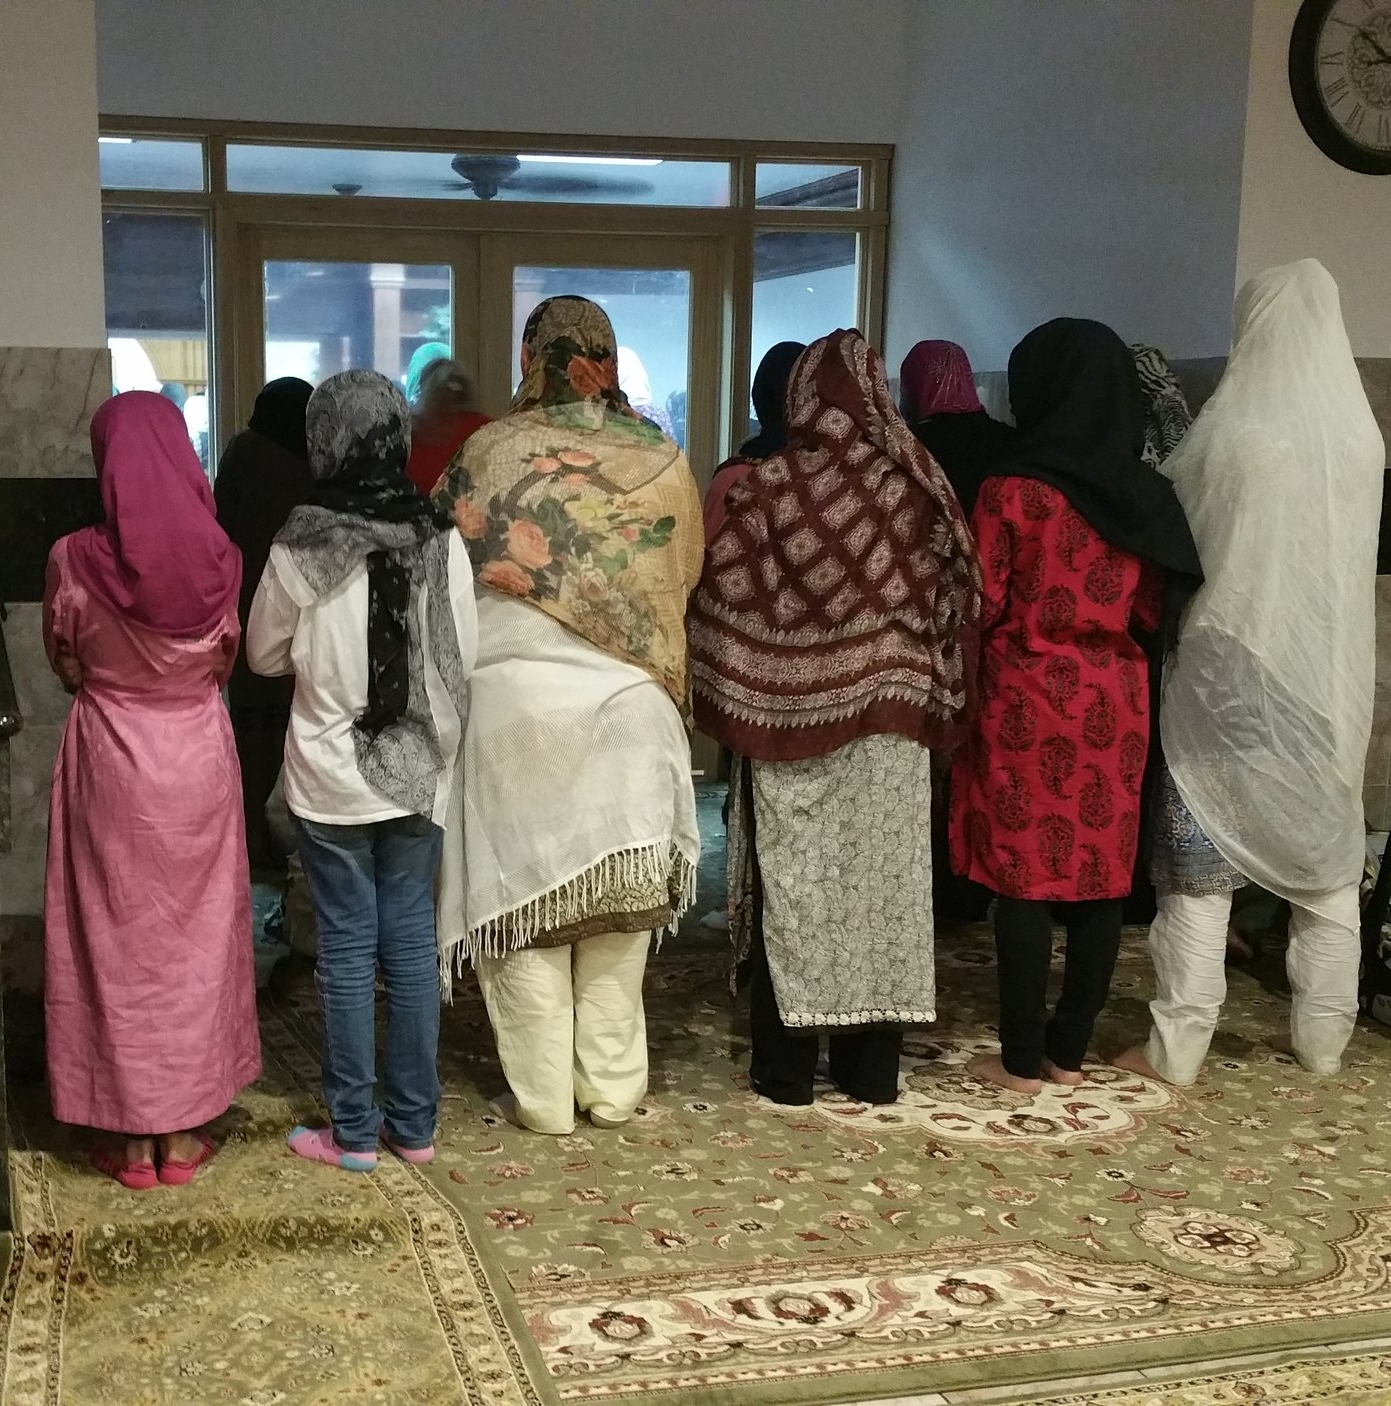 Friends praying in the masjid together during Ramadan